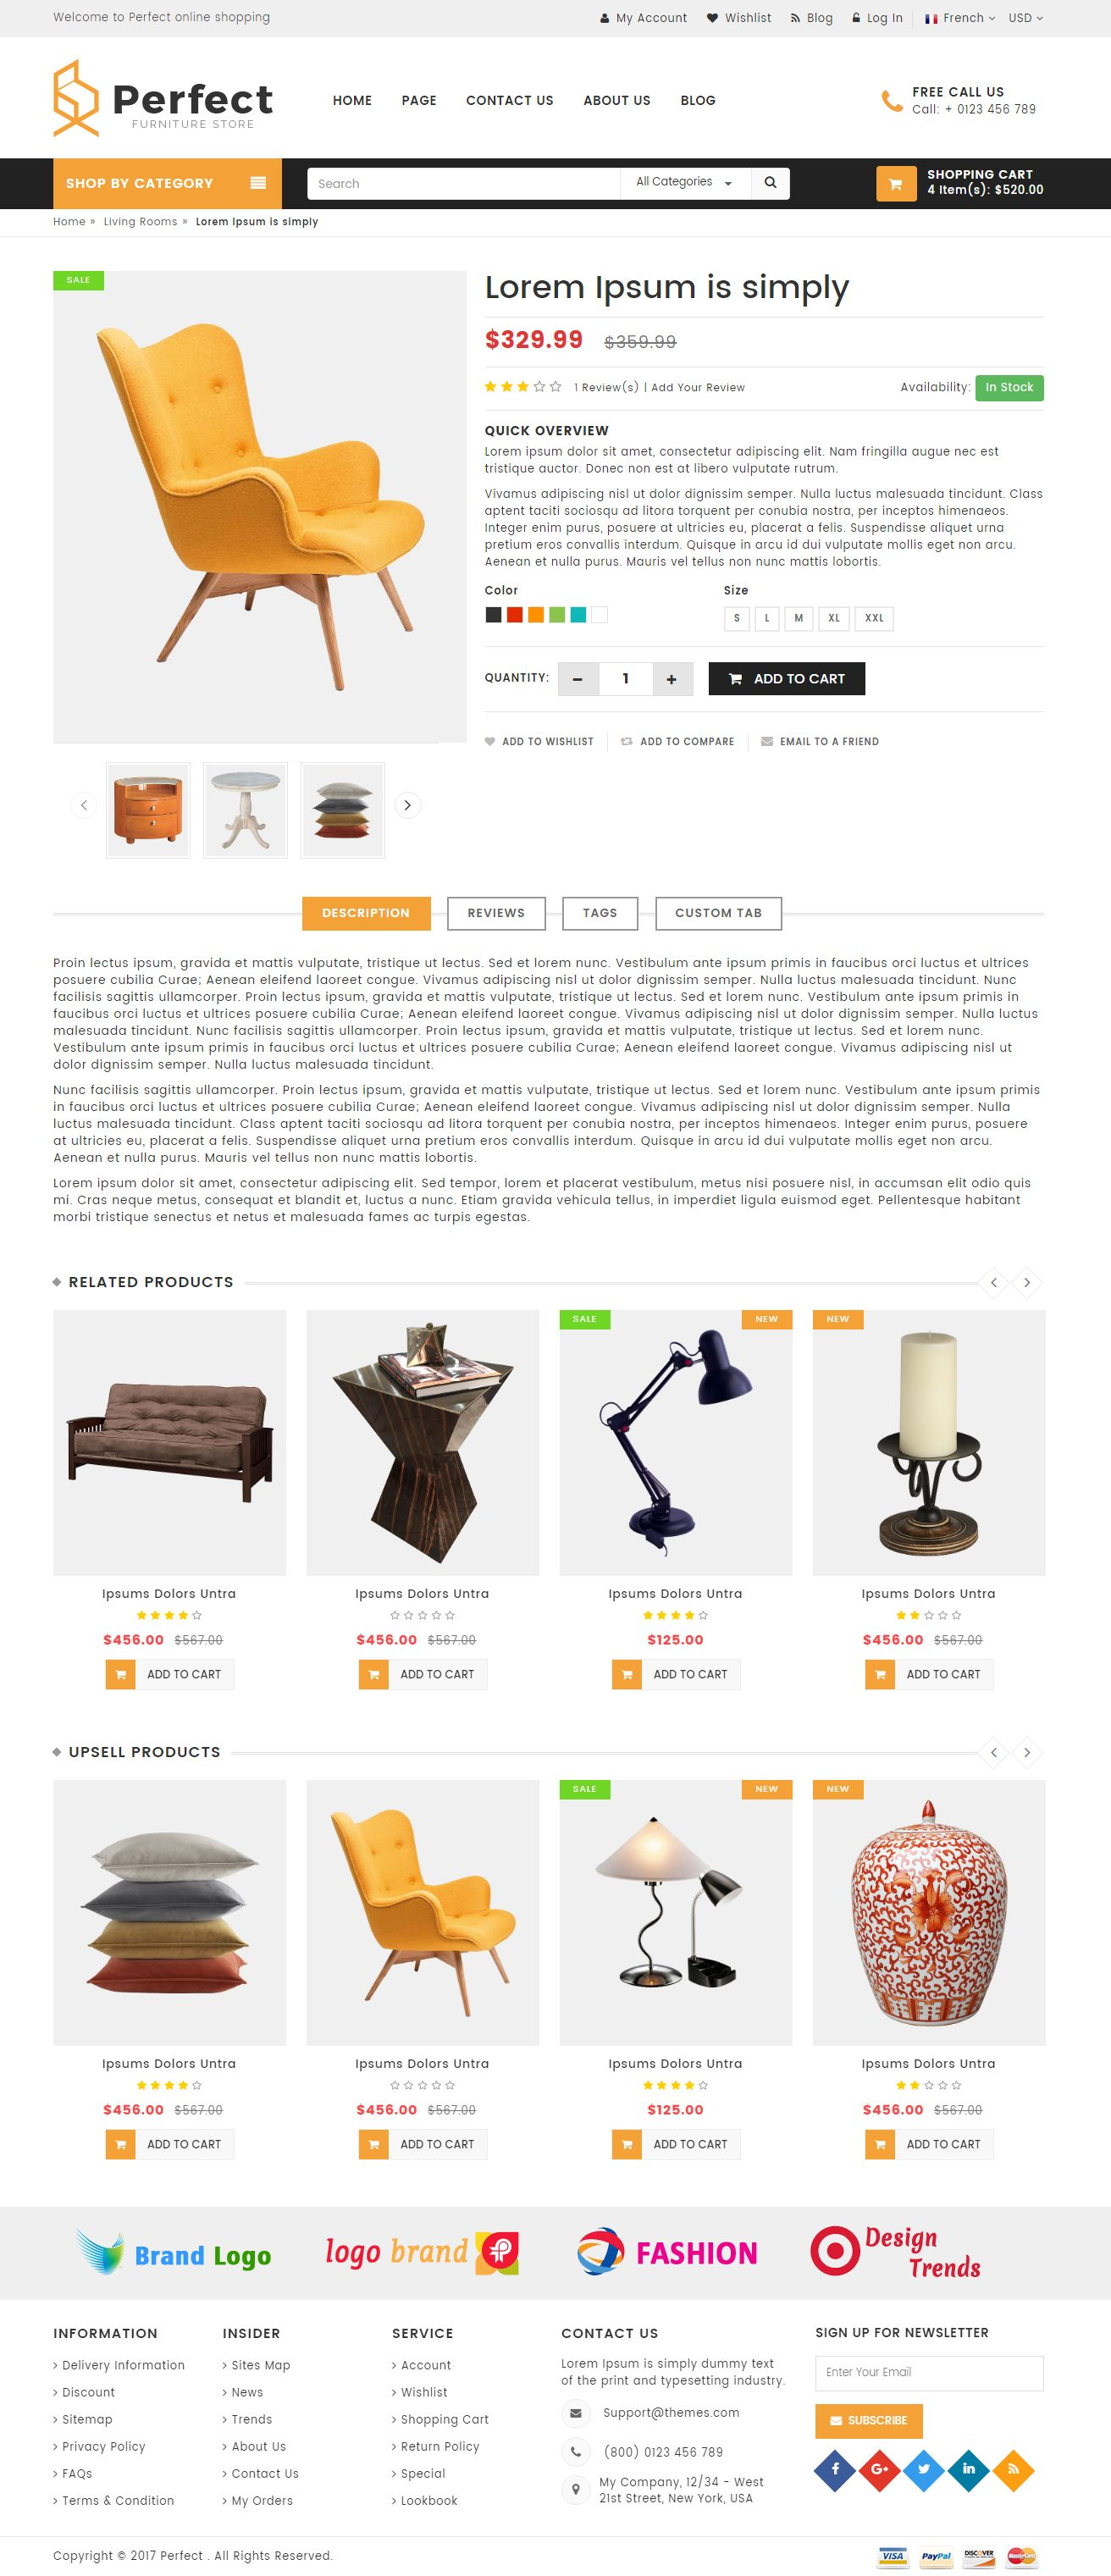 Perfect - Responsive Ecommerce HTML5 Template Screenshot 4